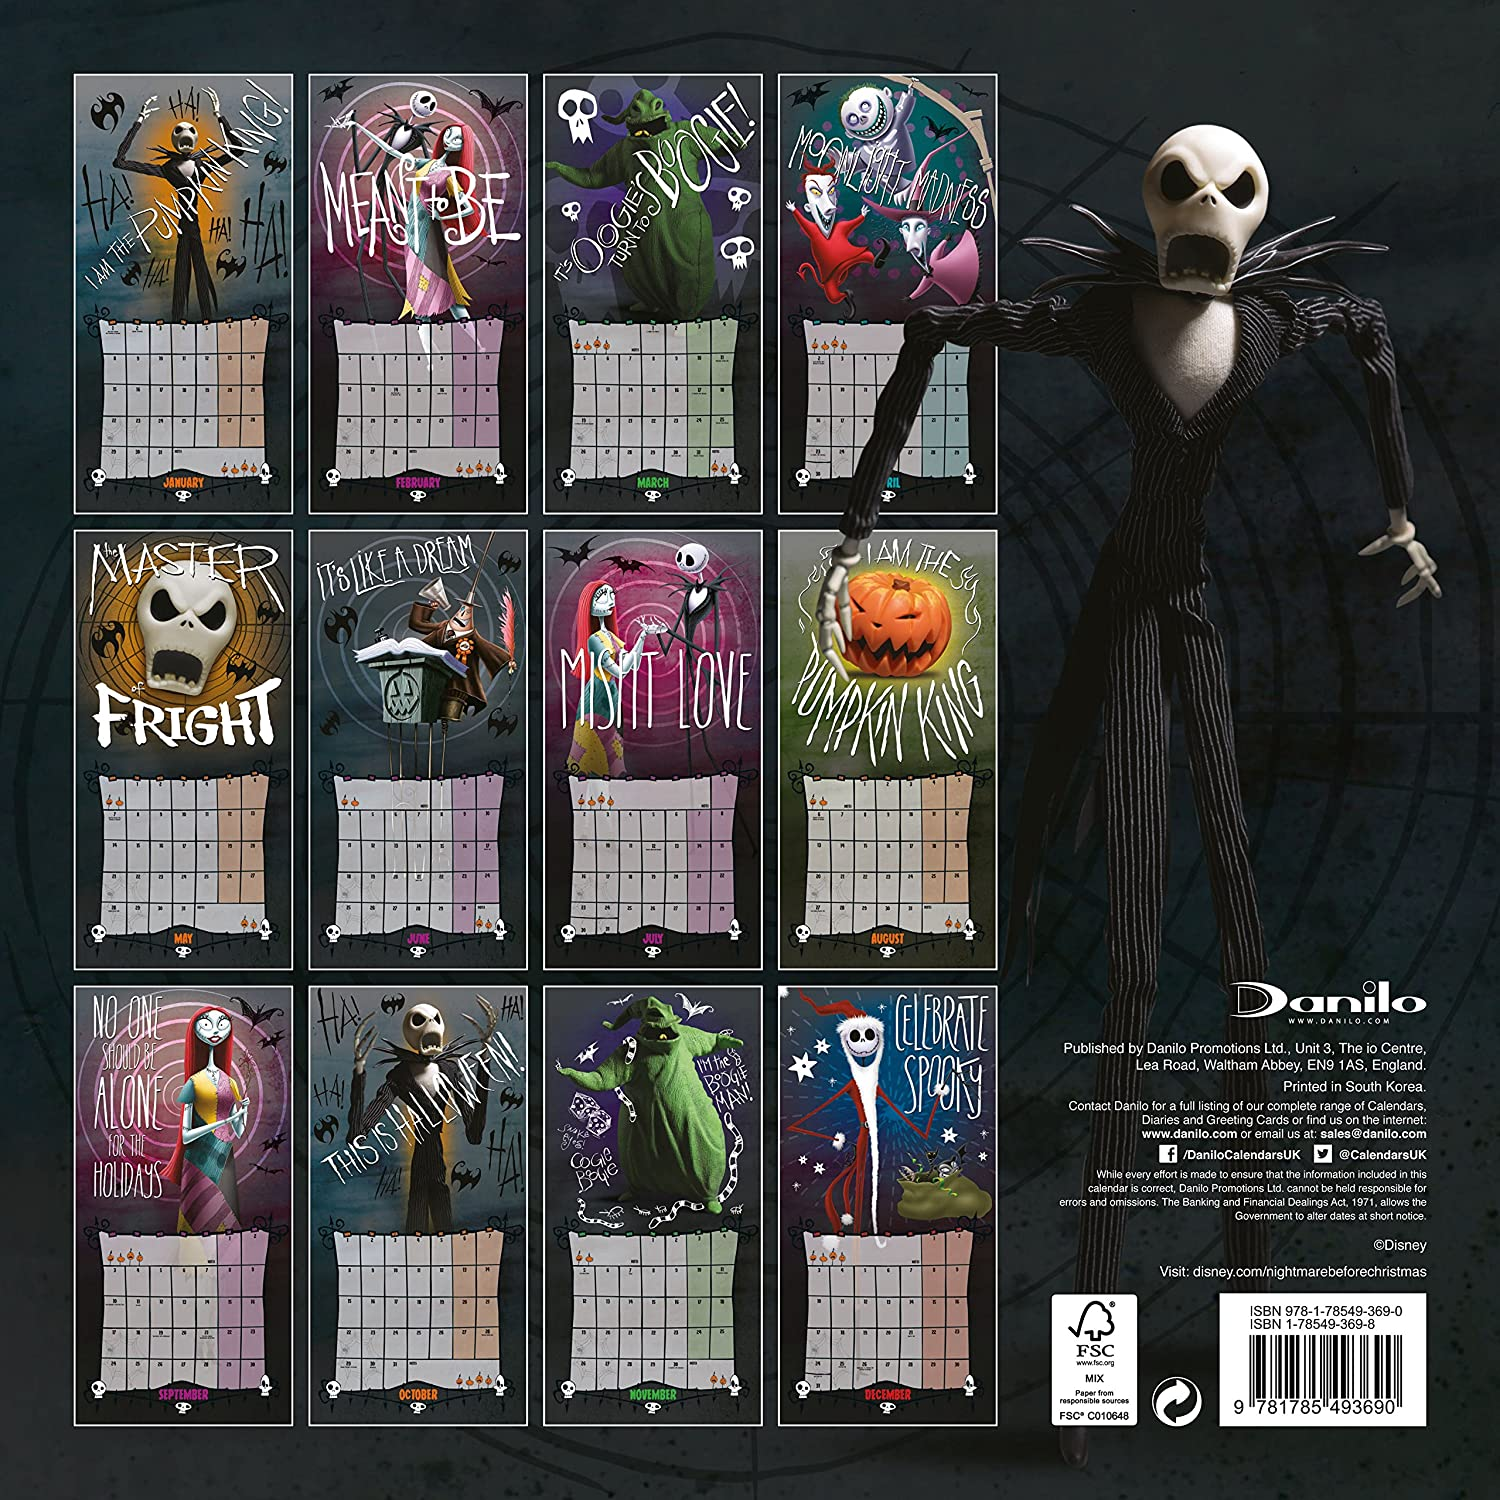 Nightmare Before Christmas Official 2018 Calendar - Square Wall Format Calendar (Calendar 2018) Disney Danilo Promotions 2018 1785493698 Calendario